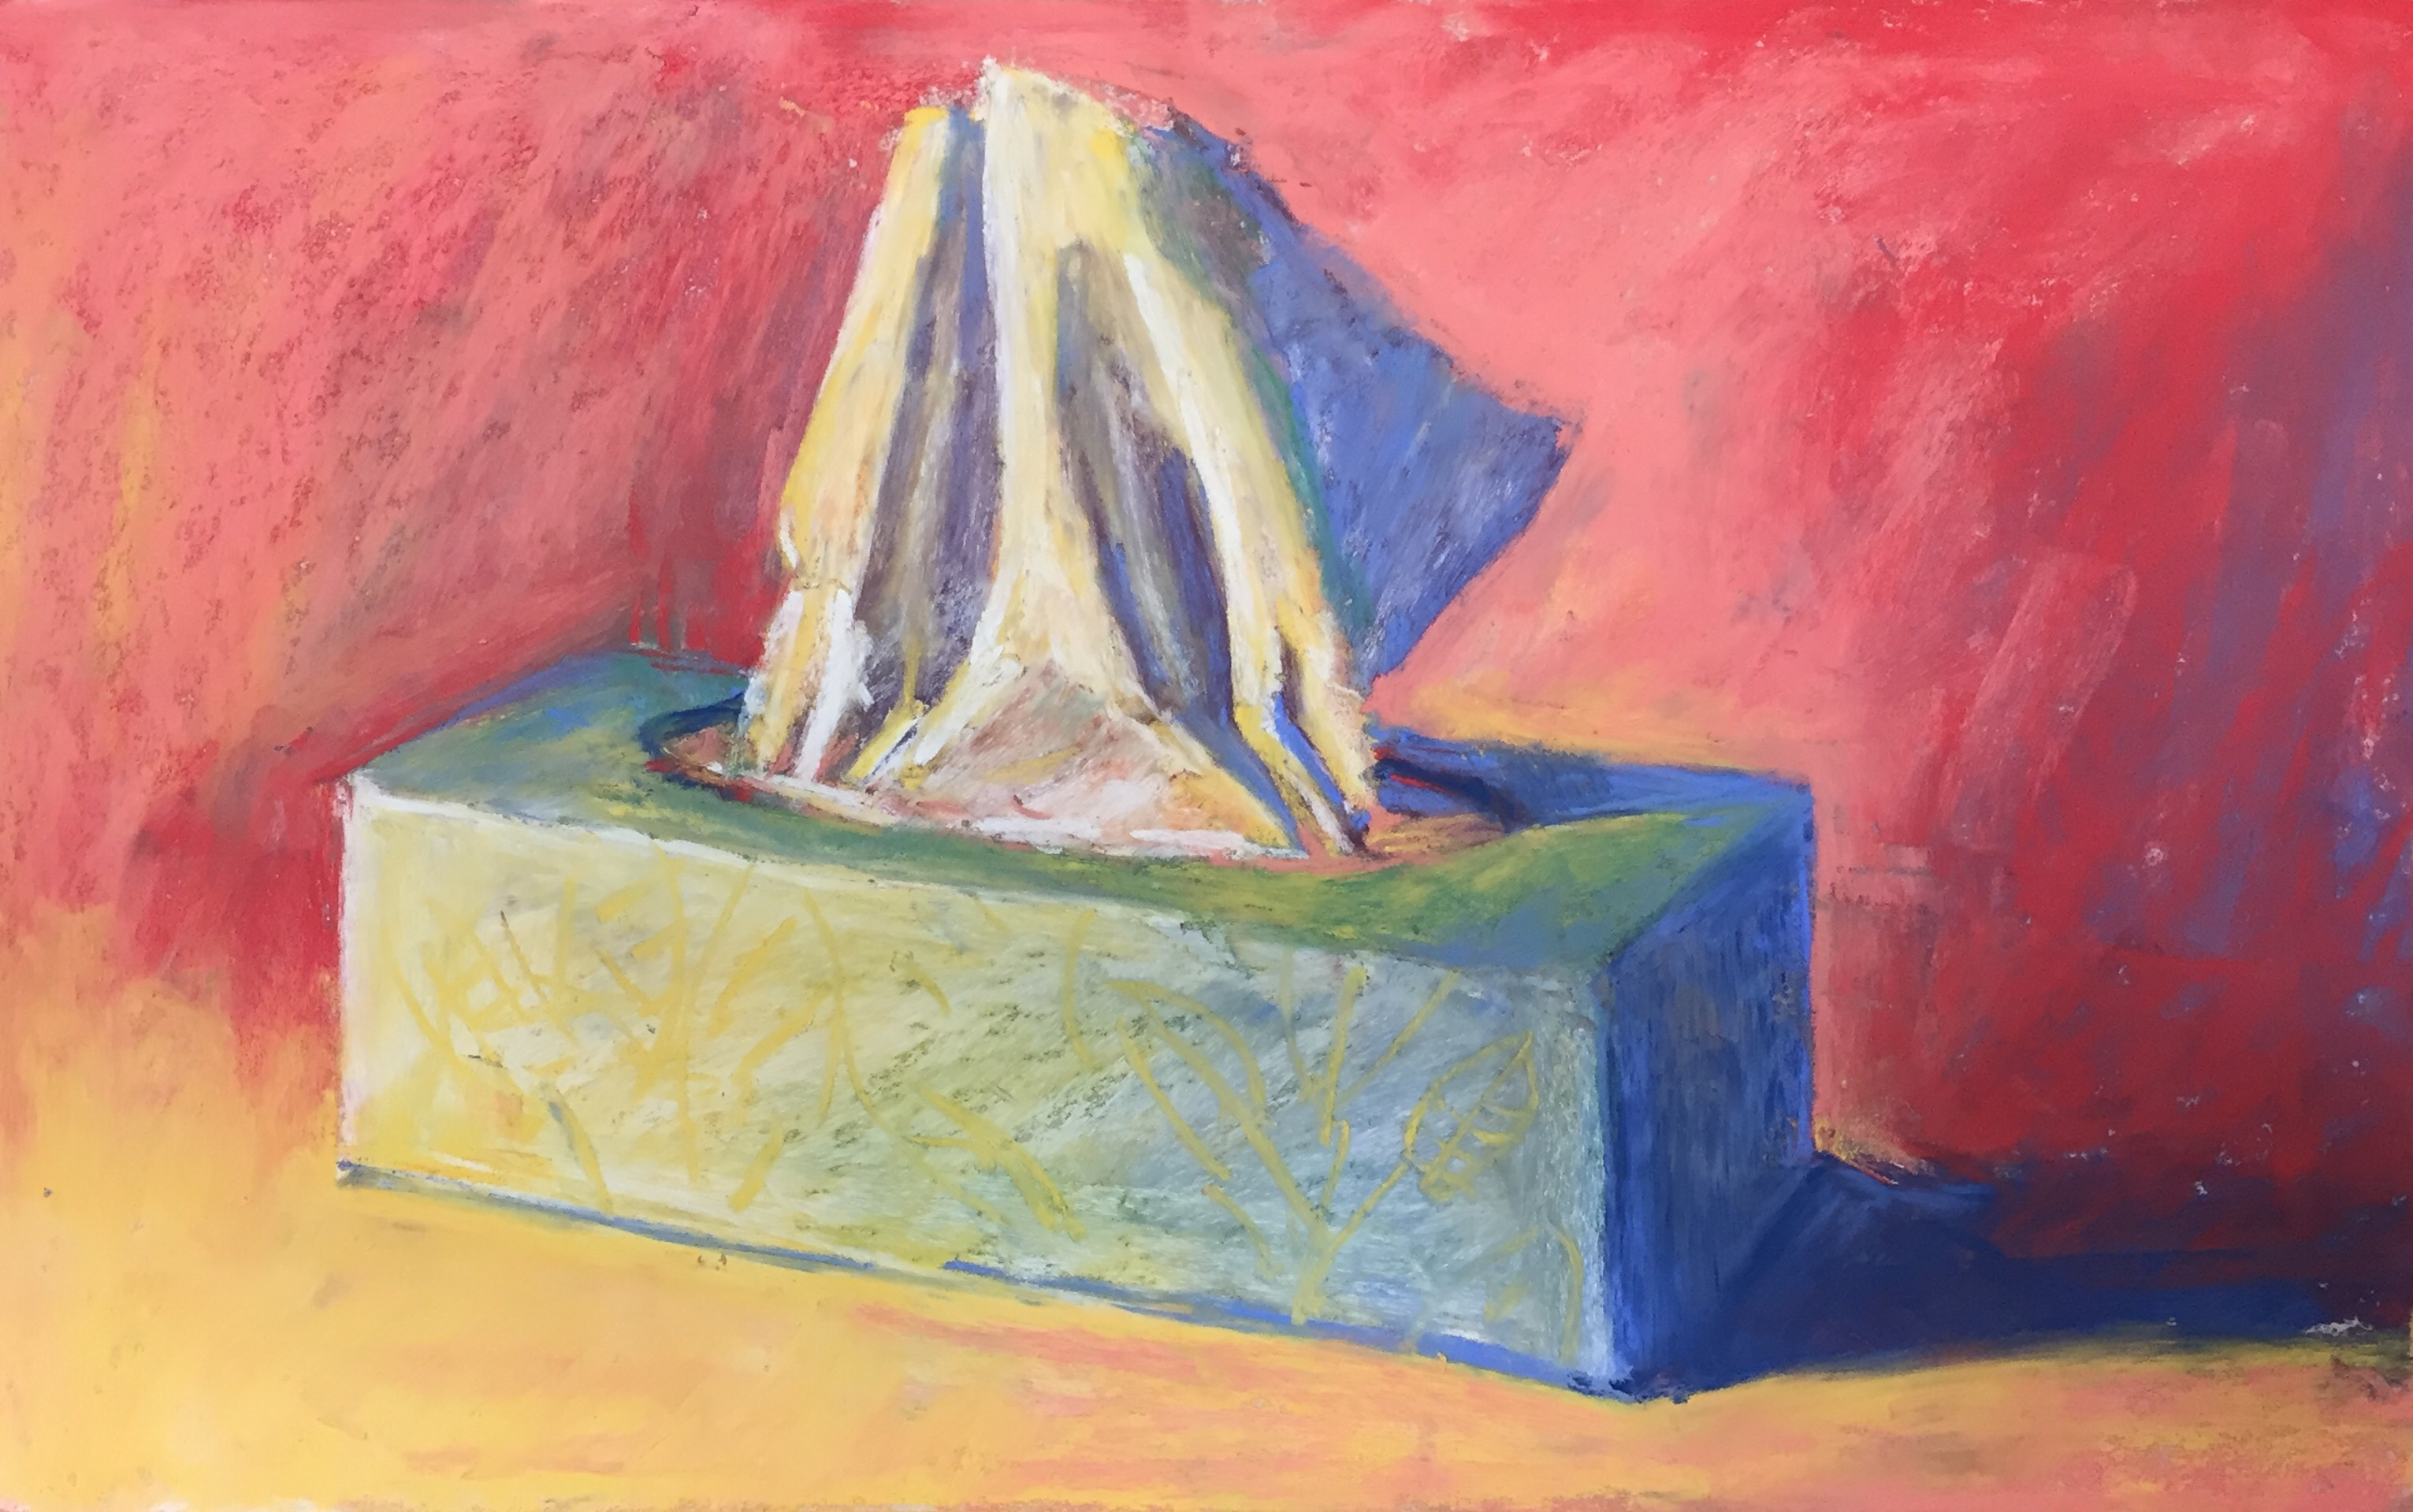 Lack of colour choices: 6. I noticed the shadow side of the box had become too light so darkened it with a light swipe of dark blue. And now consider it done! Gail Sibley, 'Box of Tissues,' Unison pastels on UART 400 paper, 7 3/4 x 12 in.